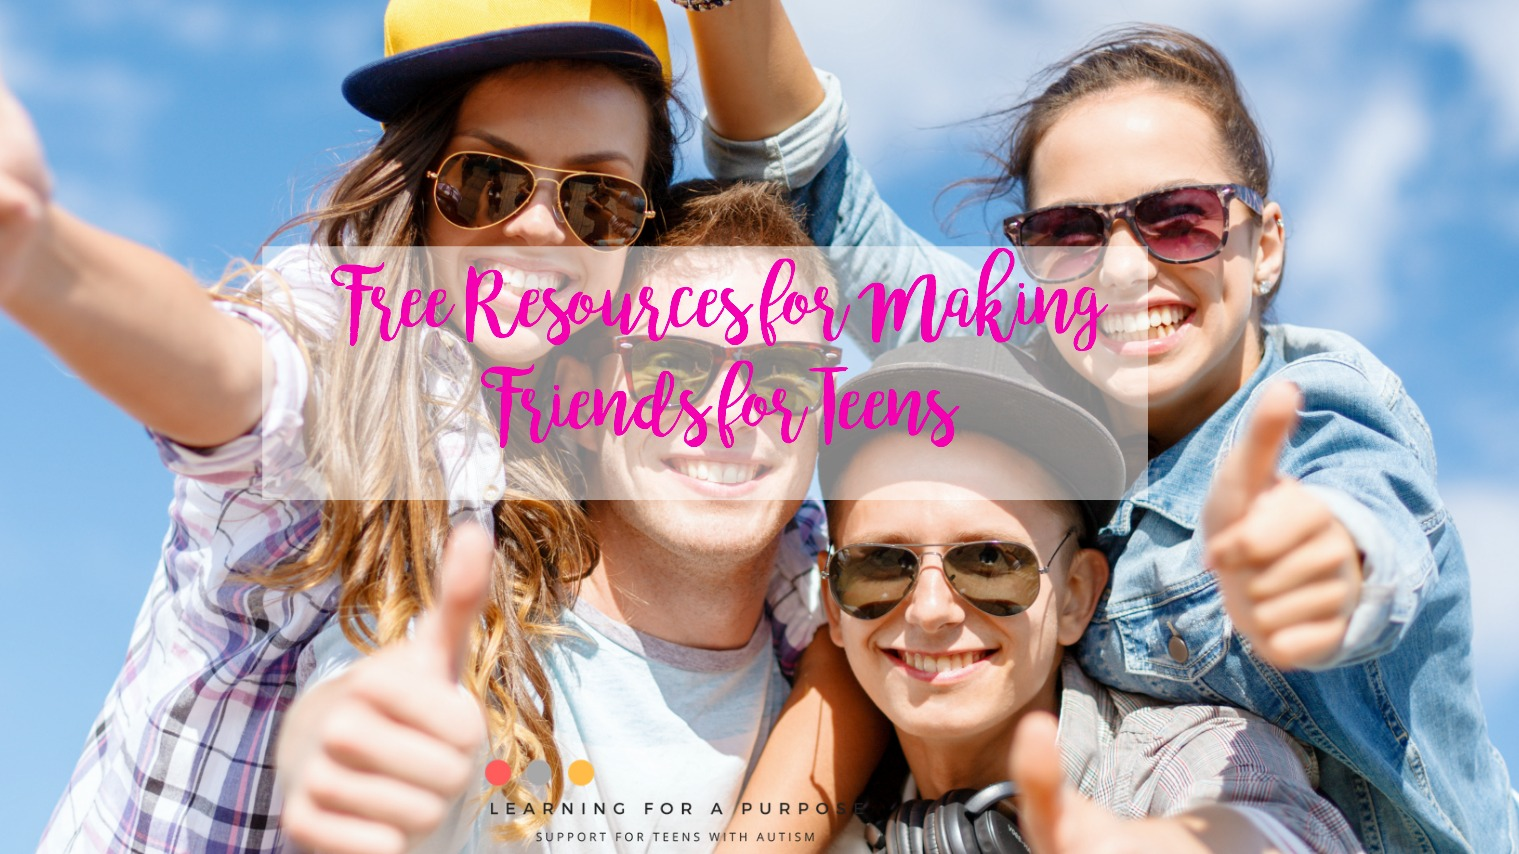 Free Resources For Making Friends For Teens